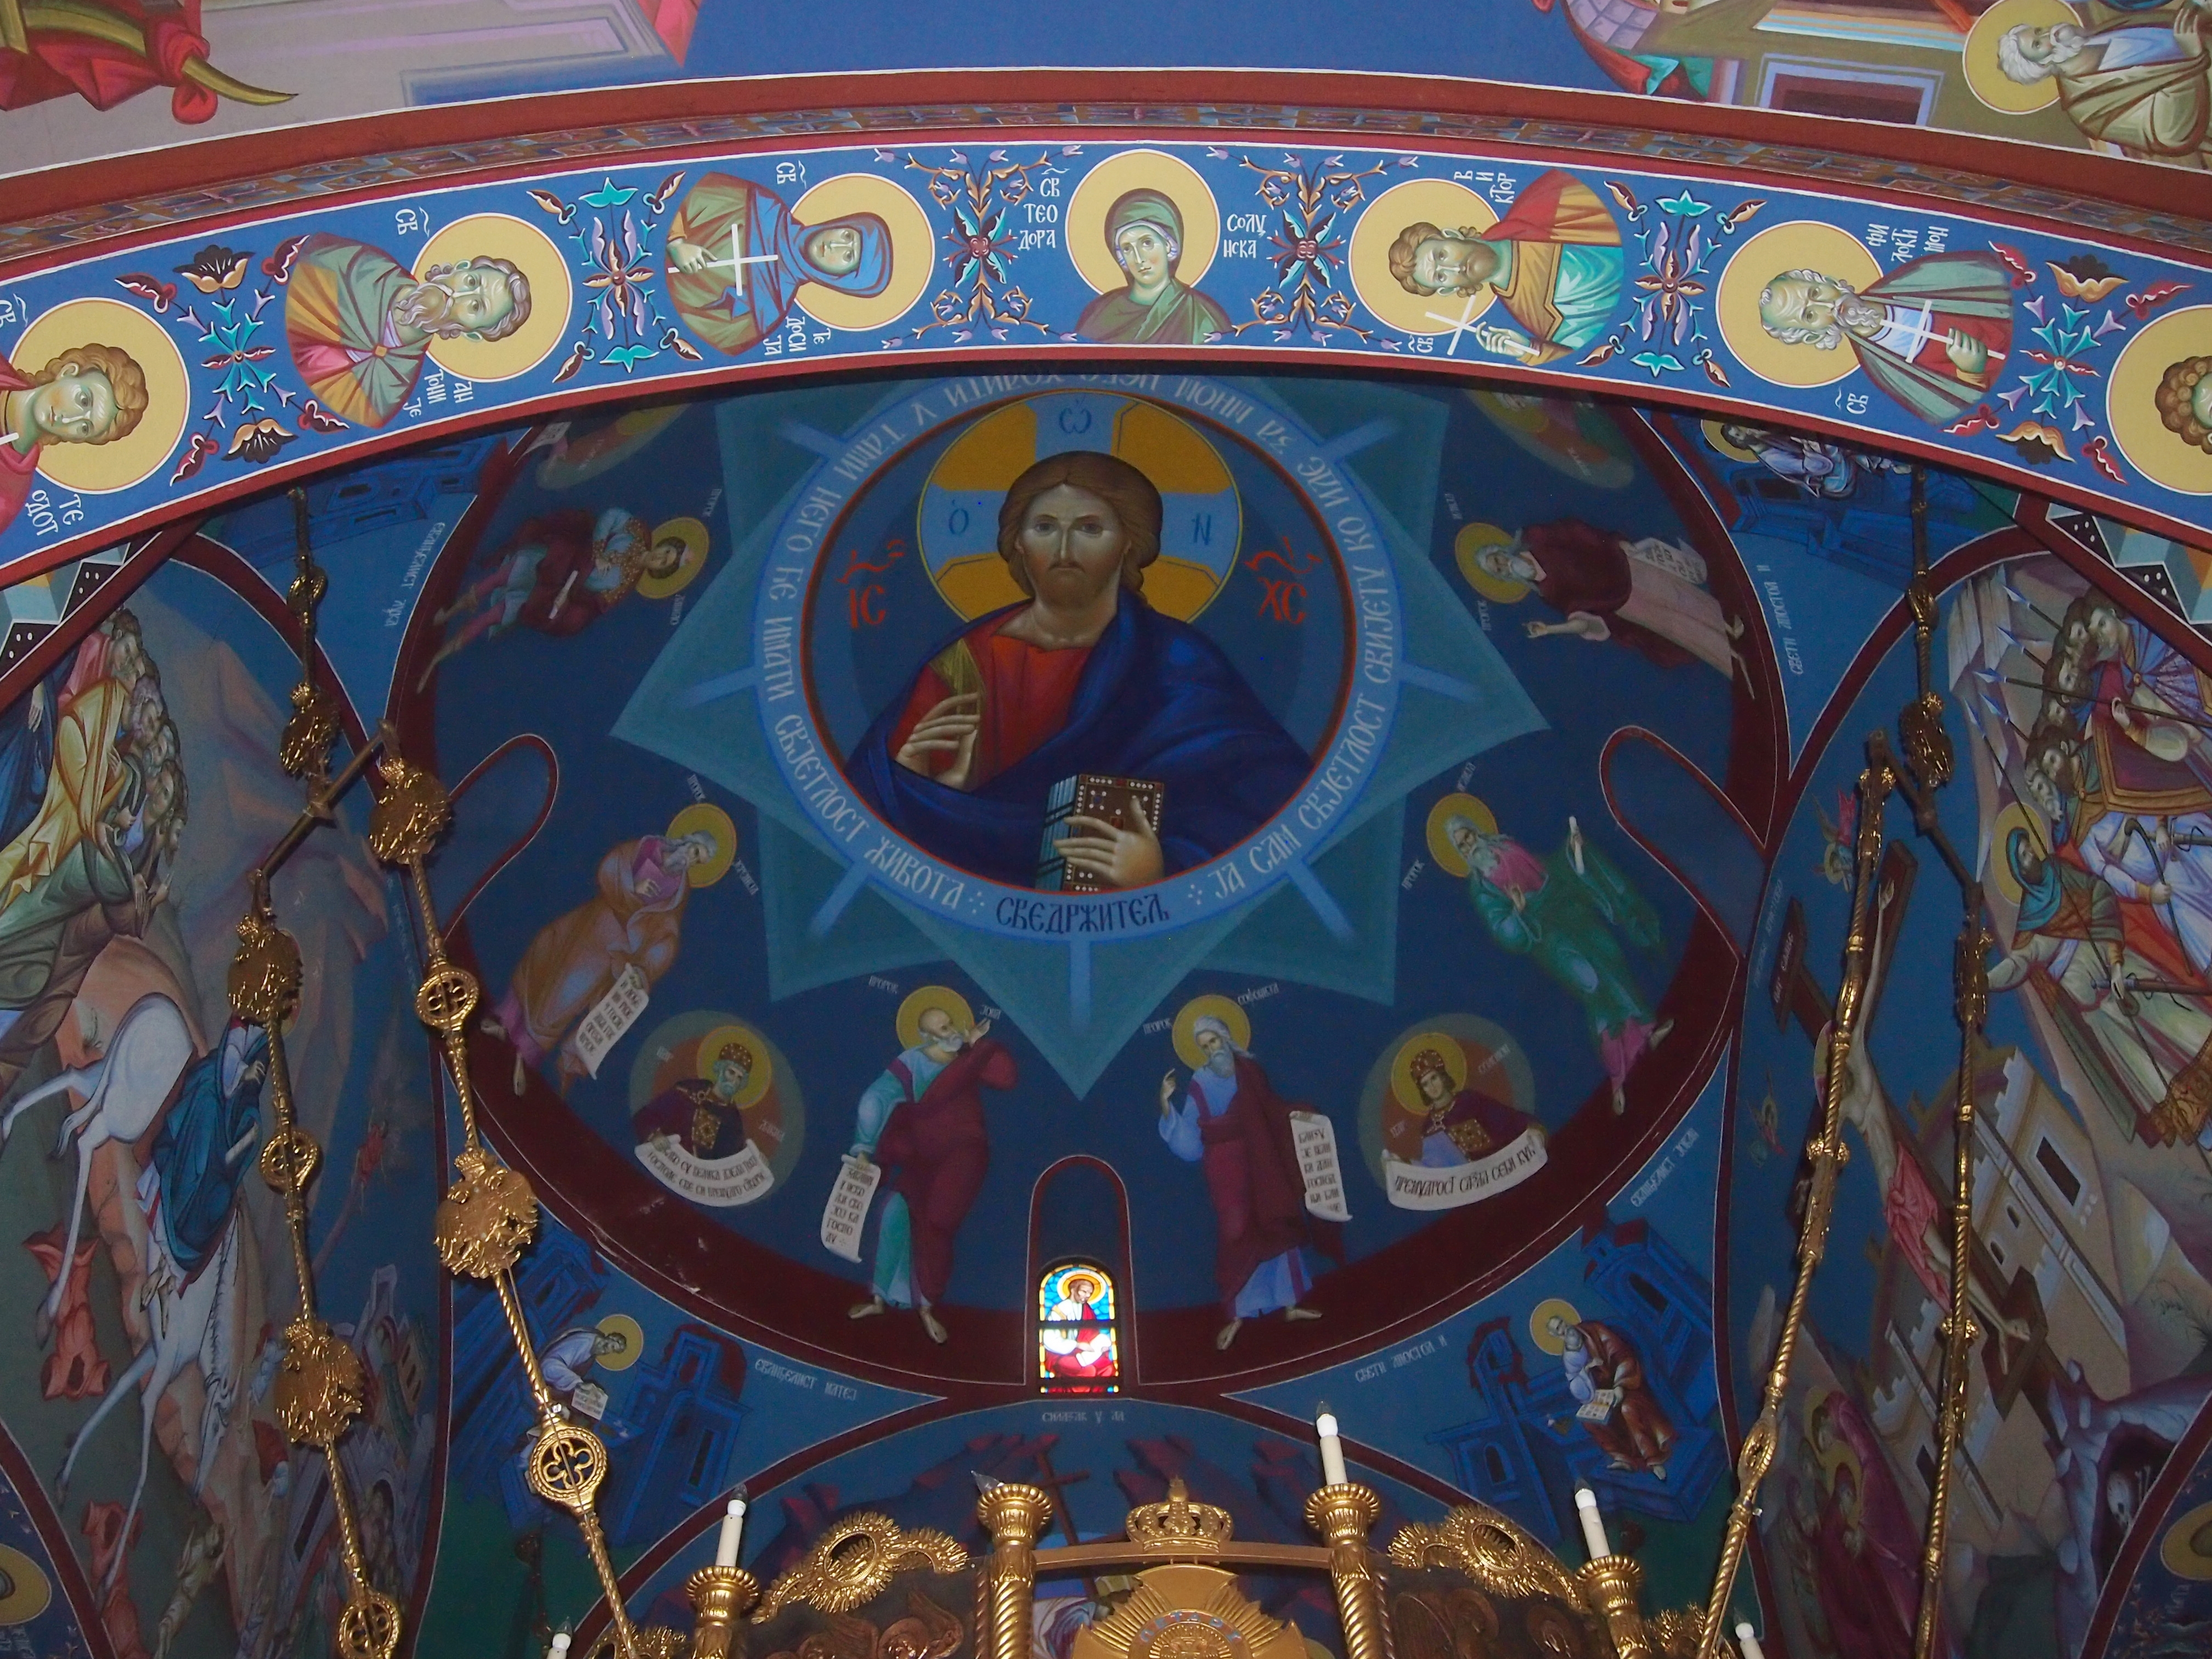 The Serbian Orthodox Monastery of St. Sava